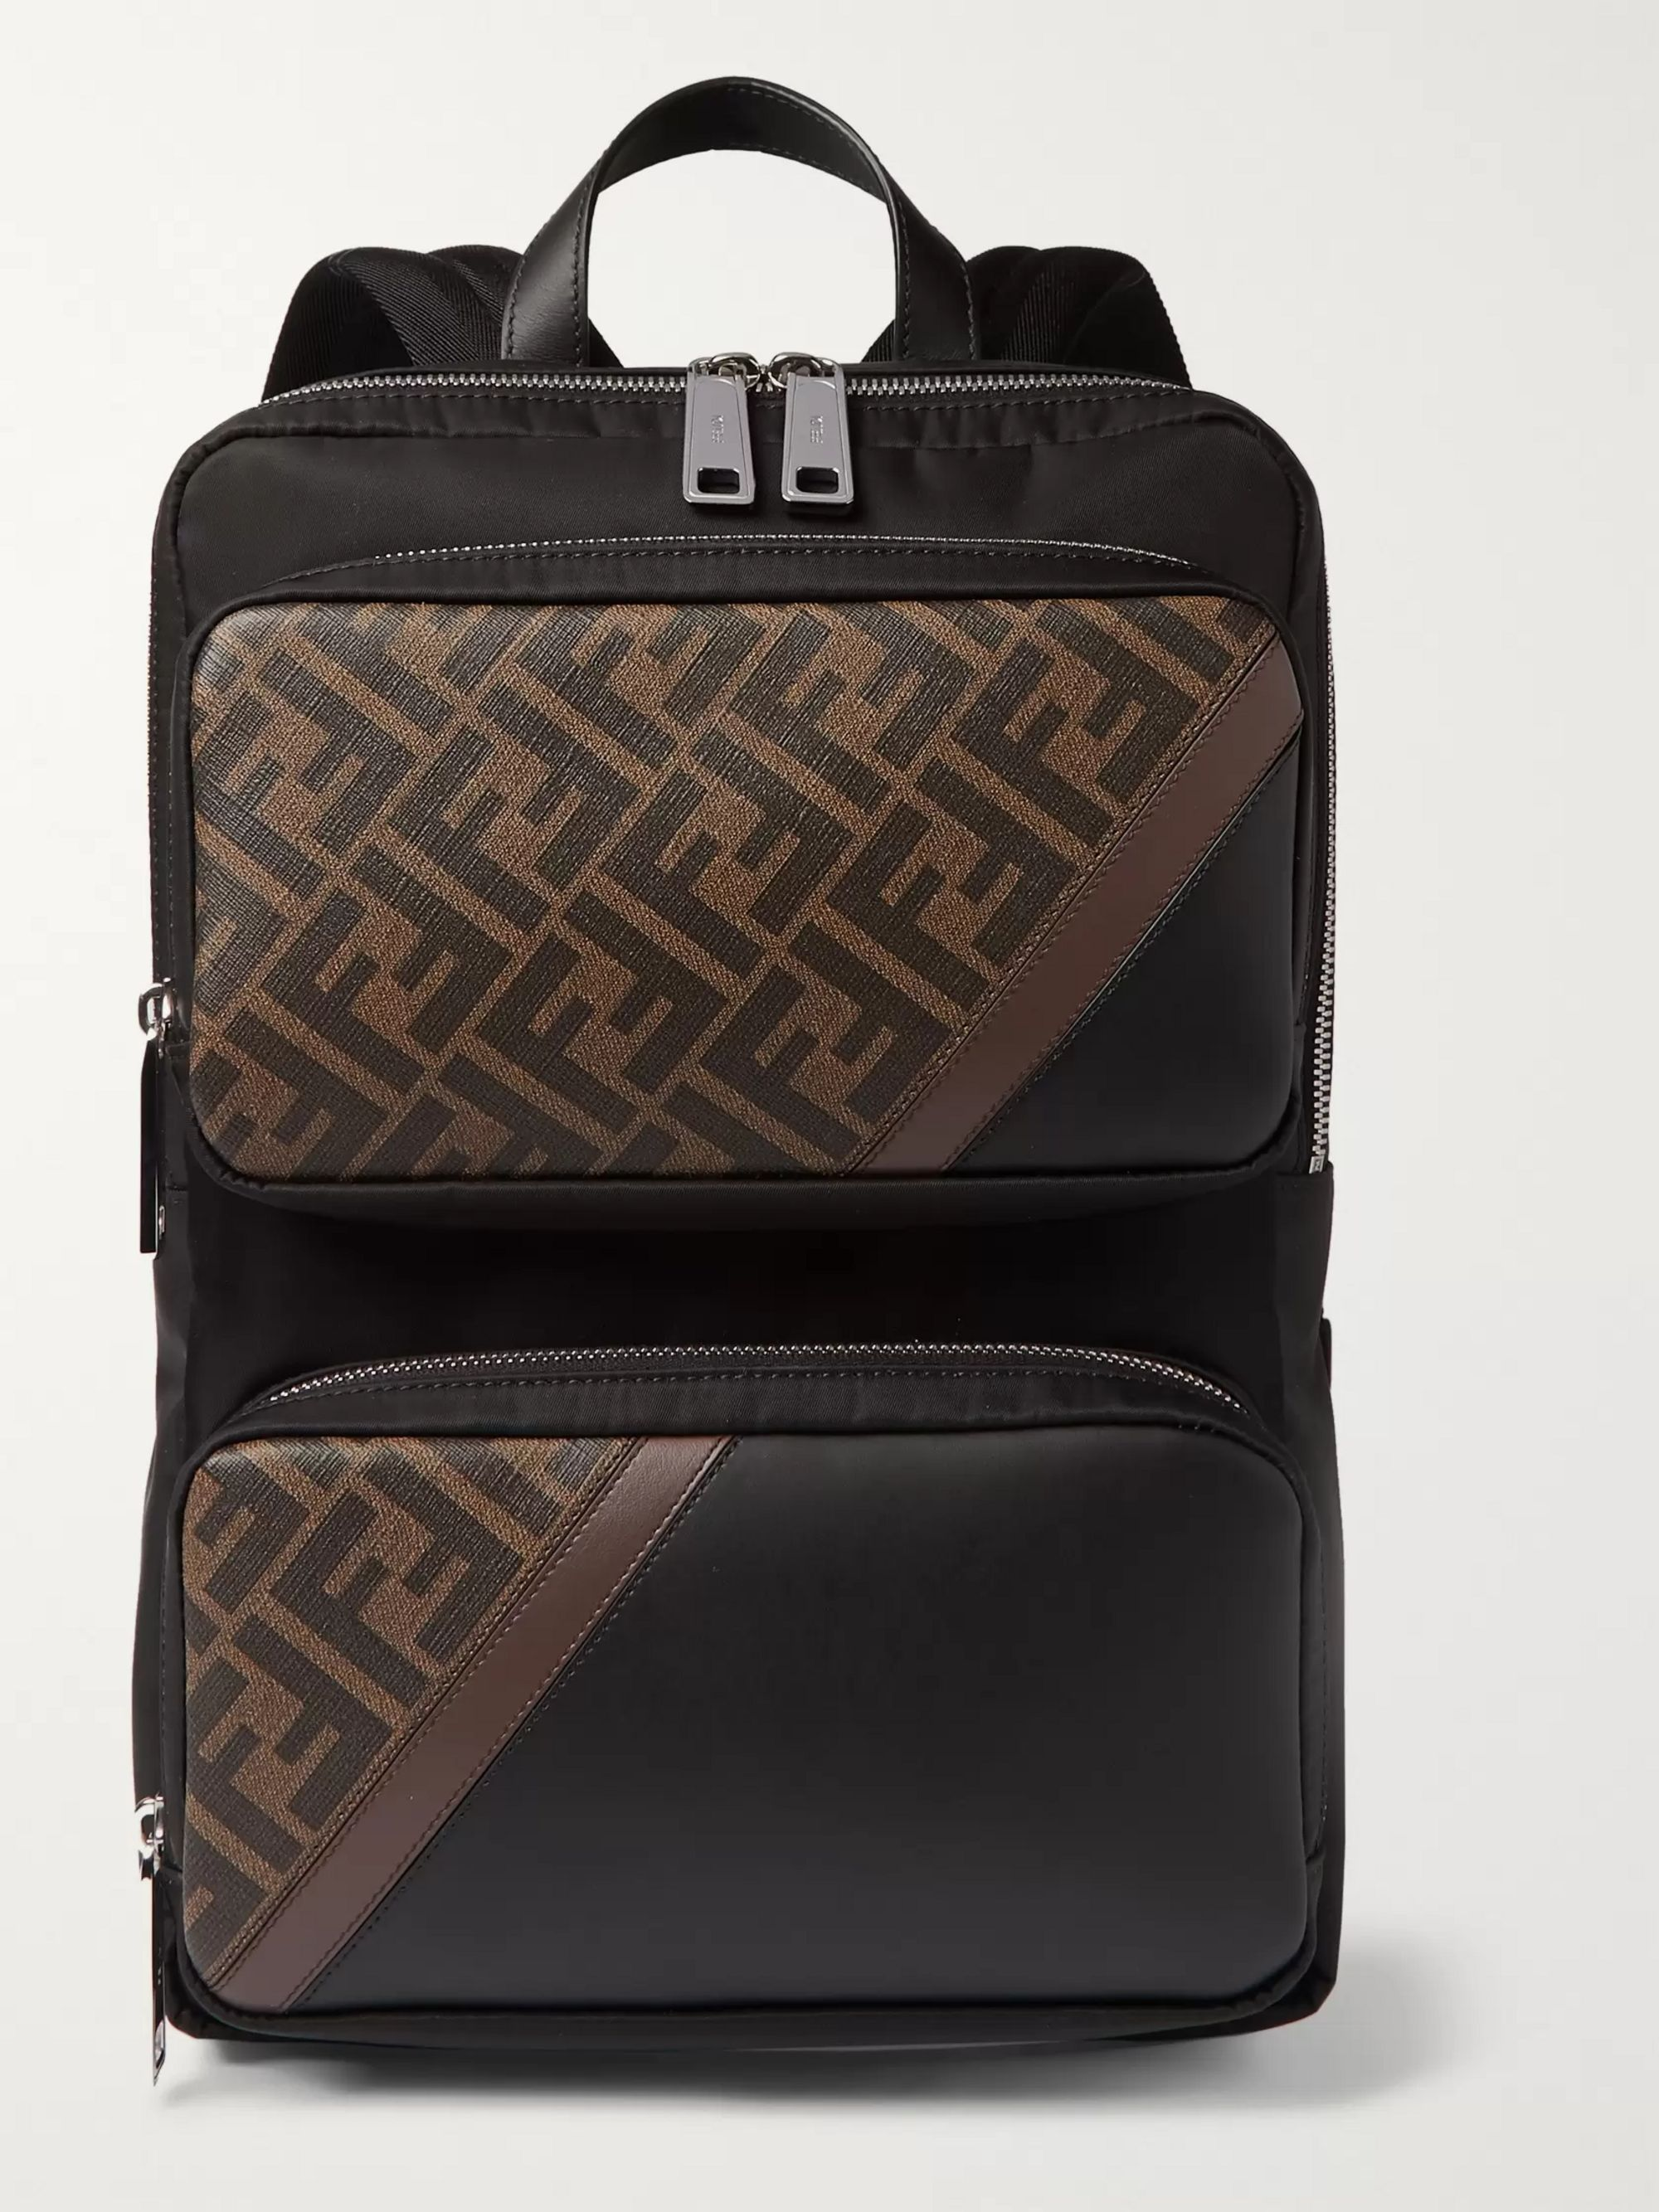 Fendi Leather and Coated Canvas-Trimmed Shell Backpack